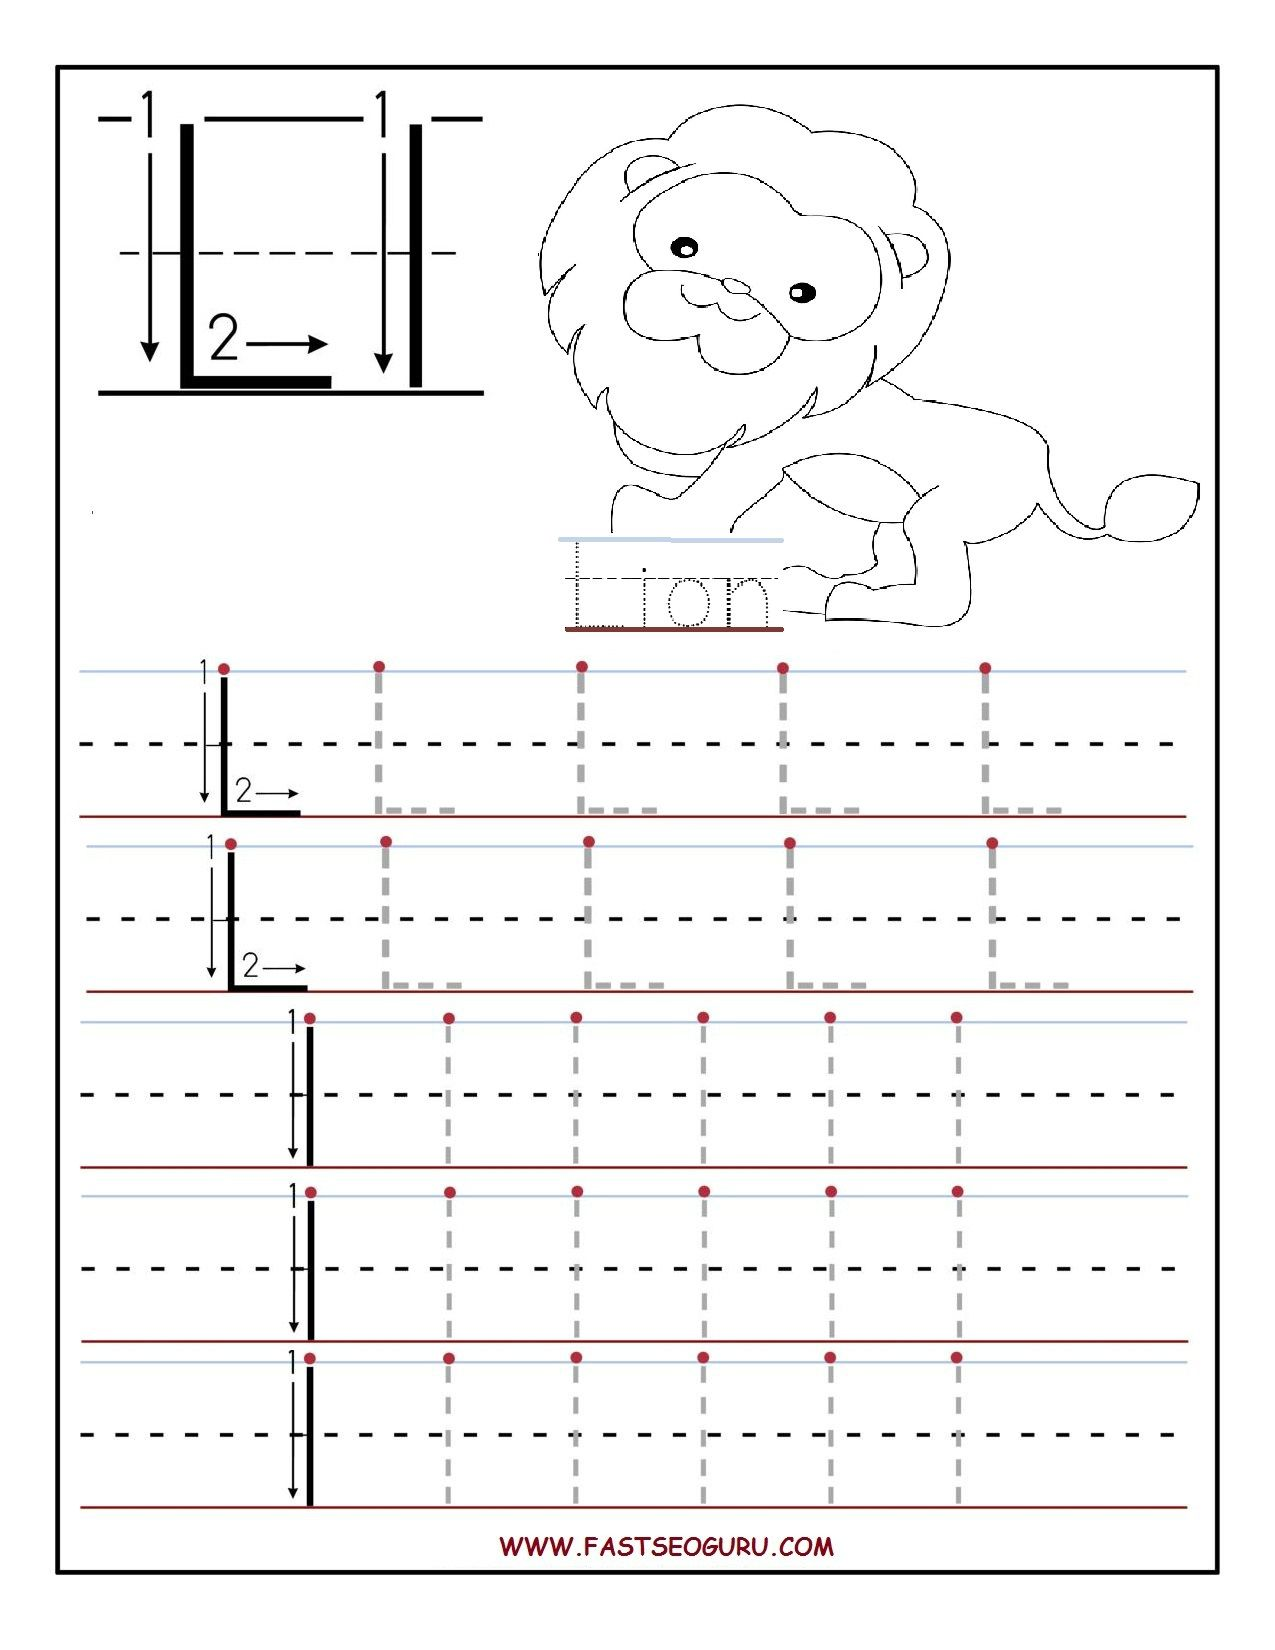 Worksheets Letter L Worksheets For Preschool printable letter l tracing worksheets for preschool education preschool